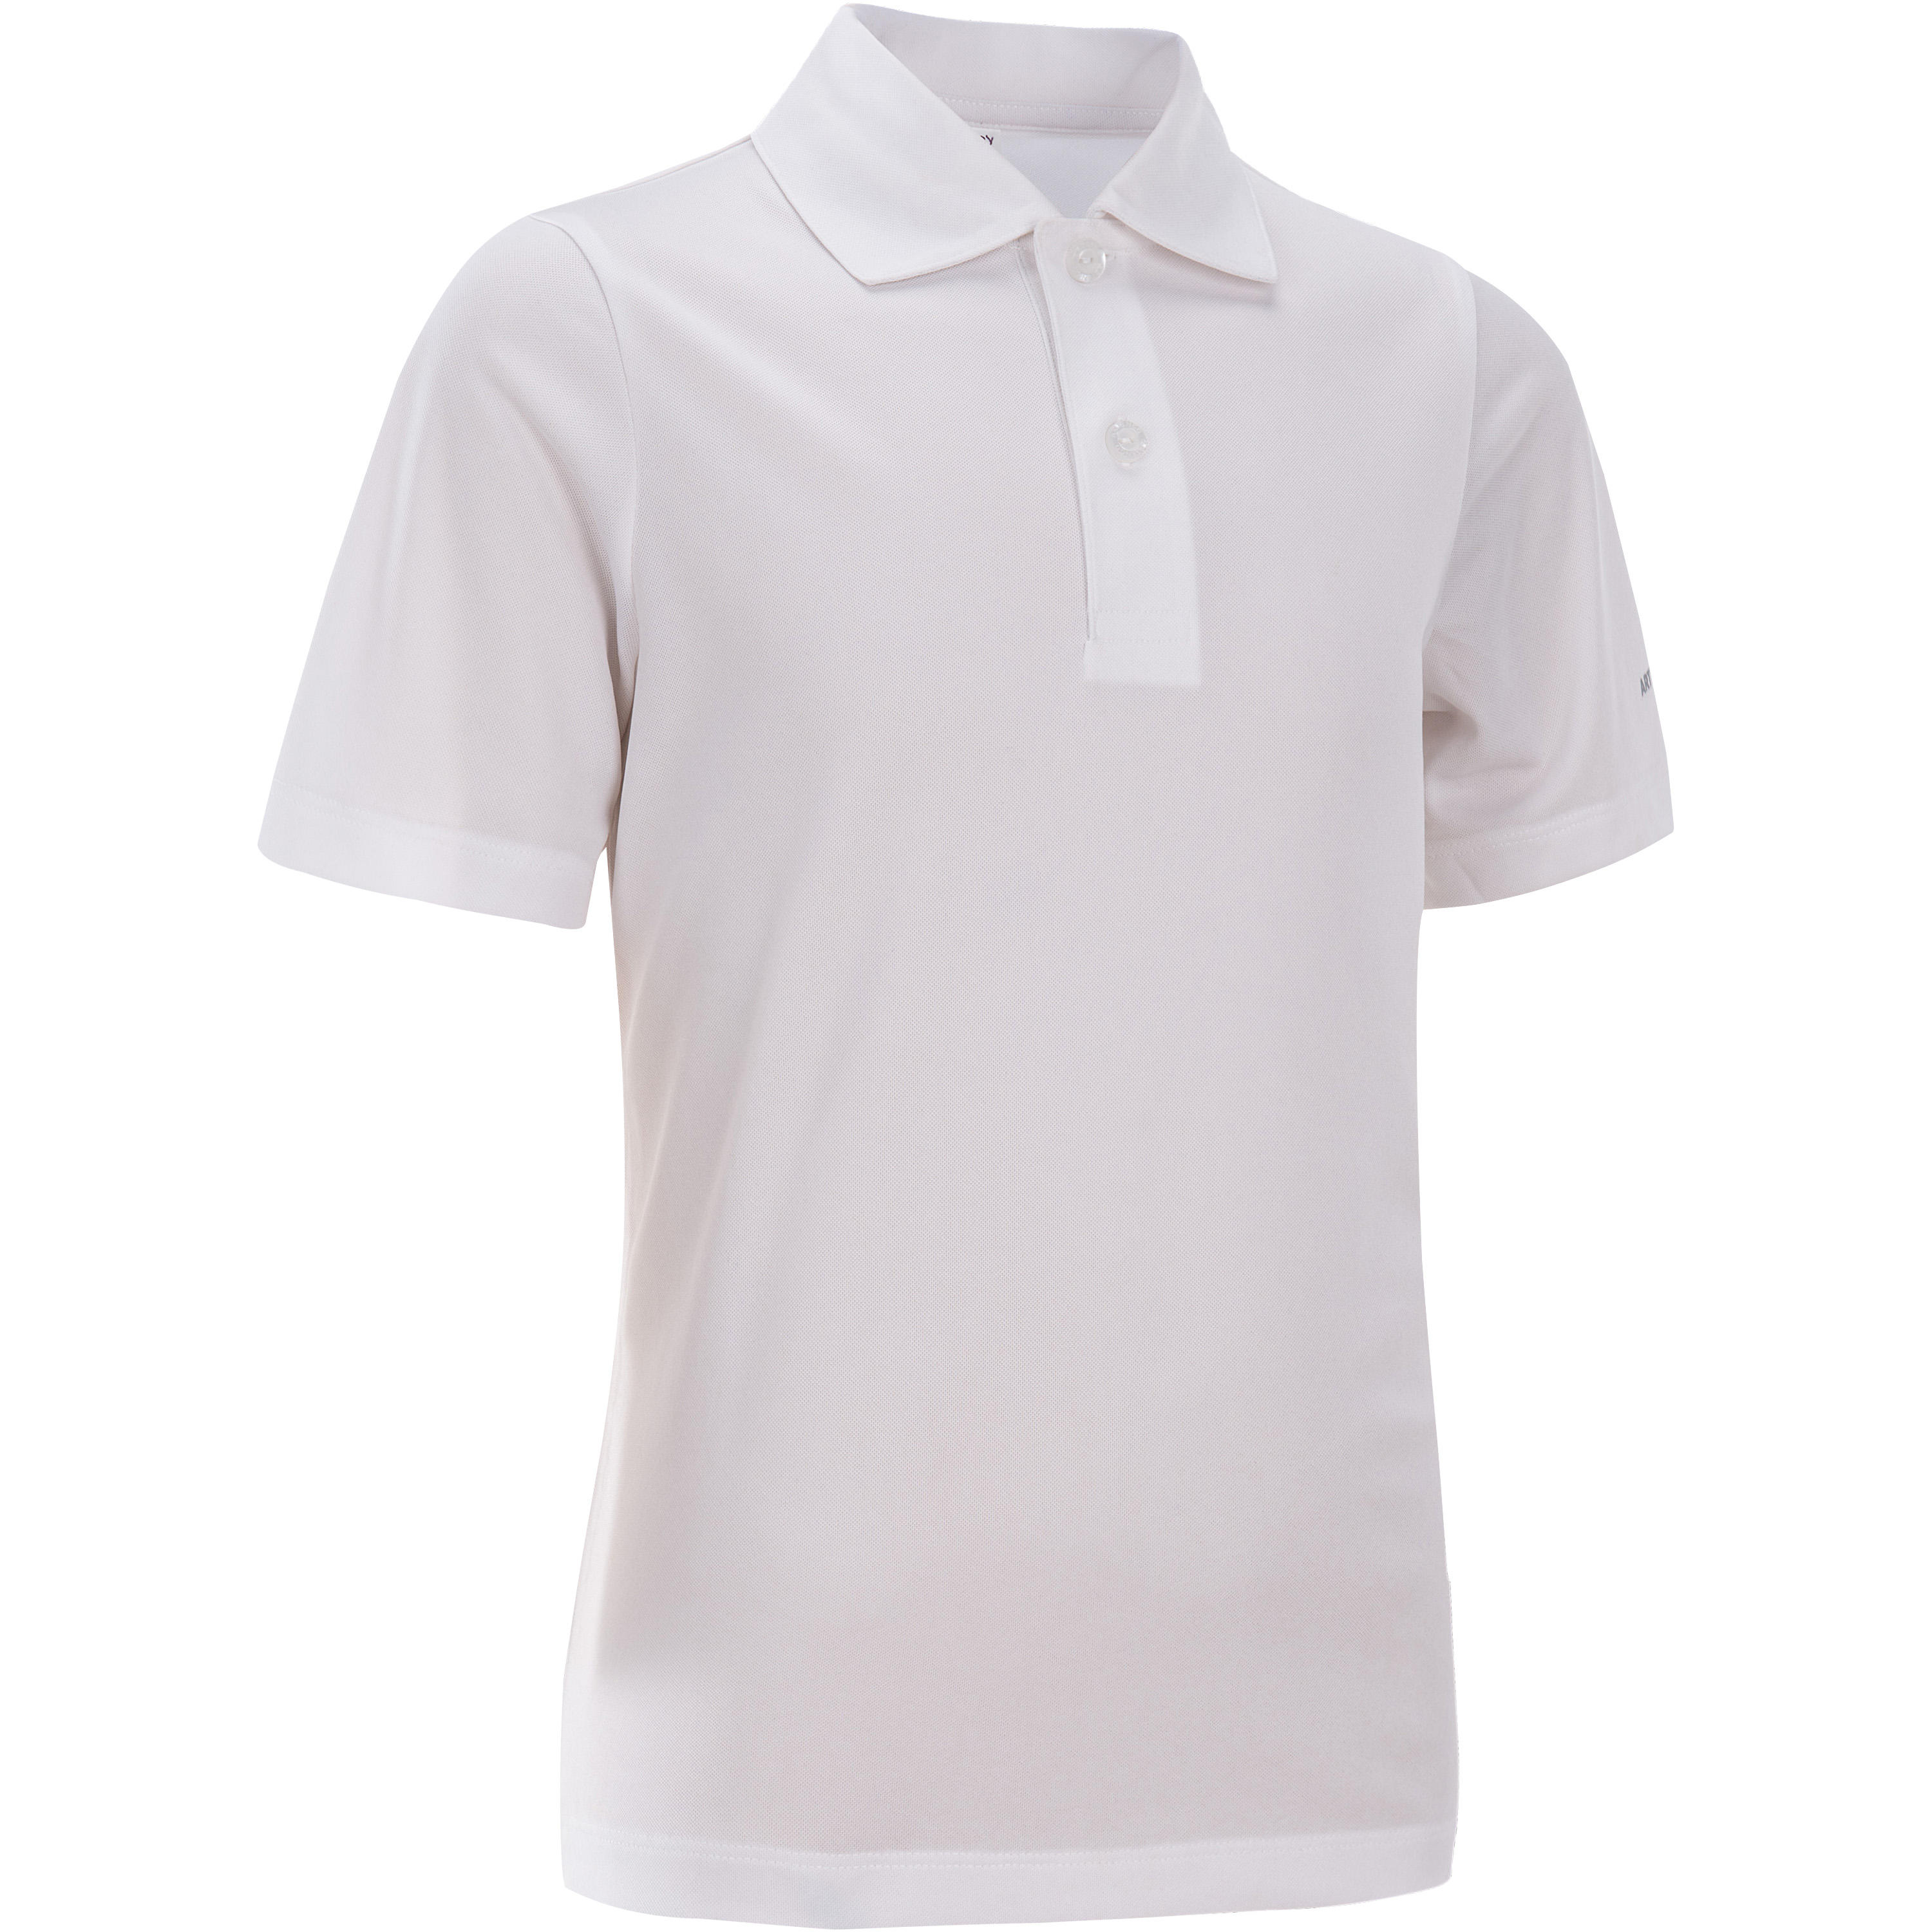 Essential Junior Tennis Badminton Paddle Table Tennis Squash Polo Shirt - White